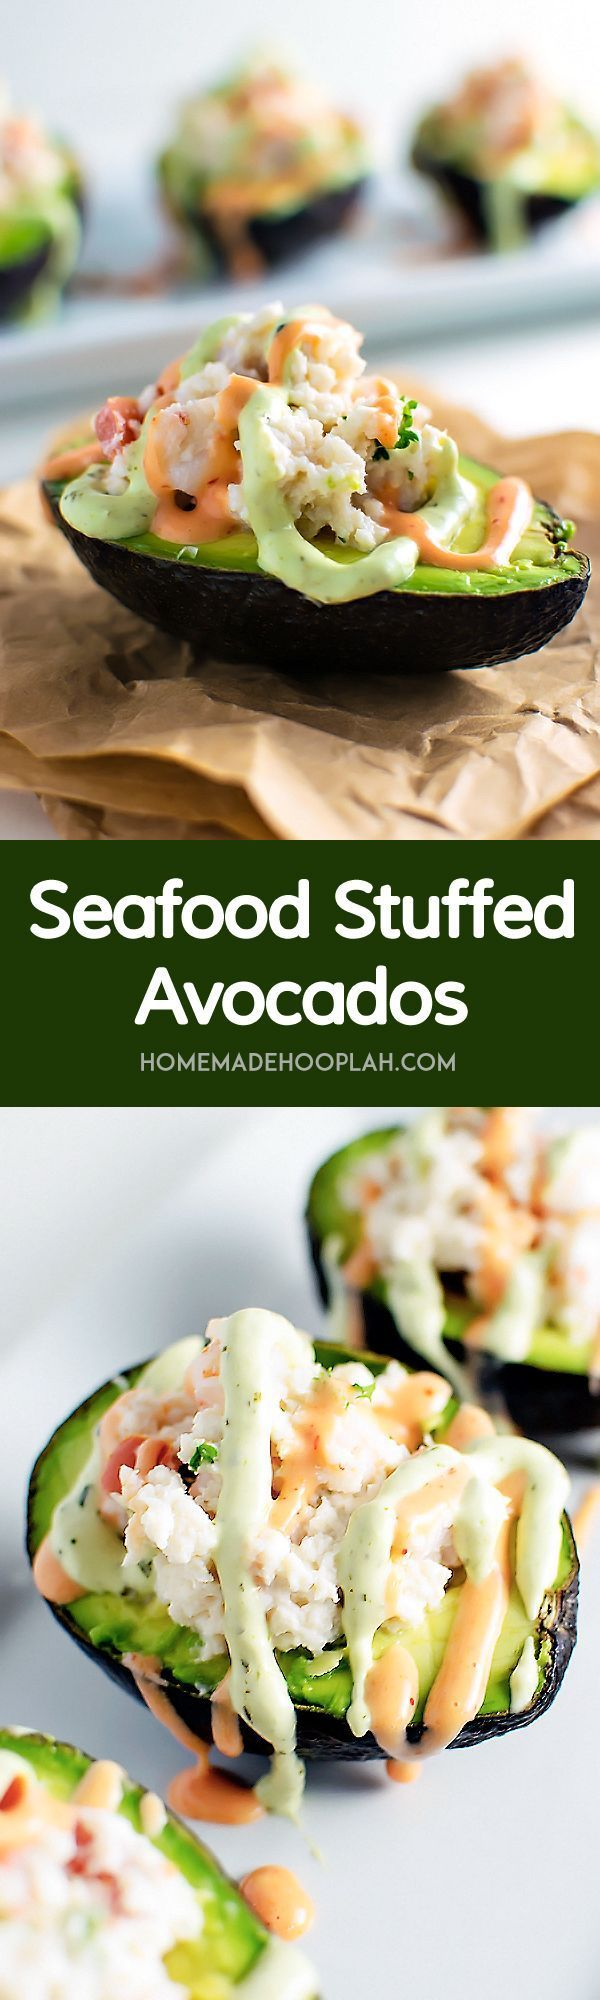 Seafood Stuffed Avocados! Halved avocados filled with shrimp, crab, and tomato and then drizzled with sriracha and avocado cream on top. | HomeamdeHooplah.com